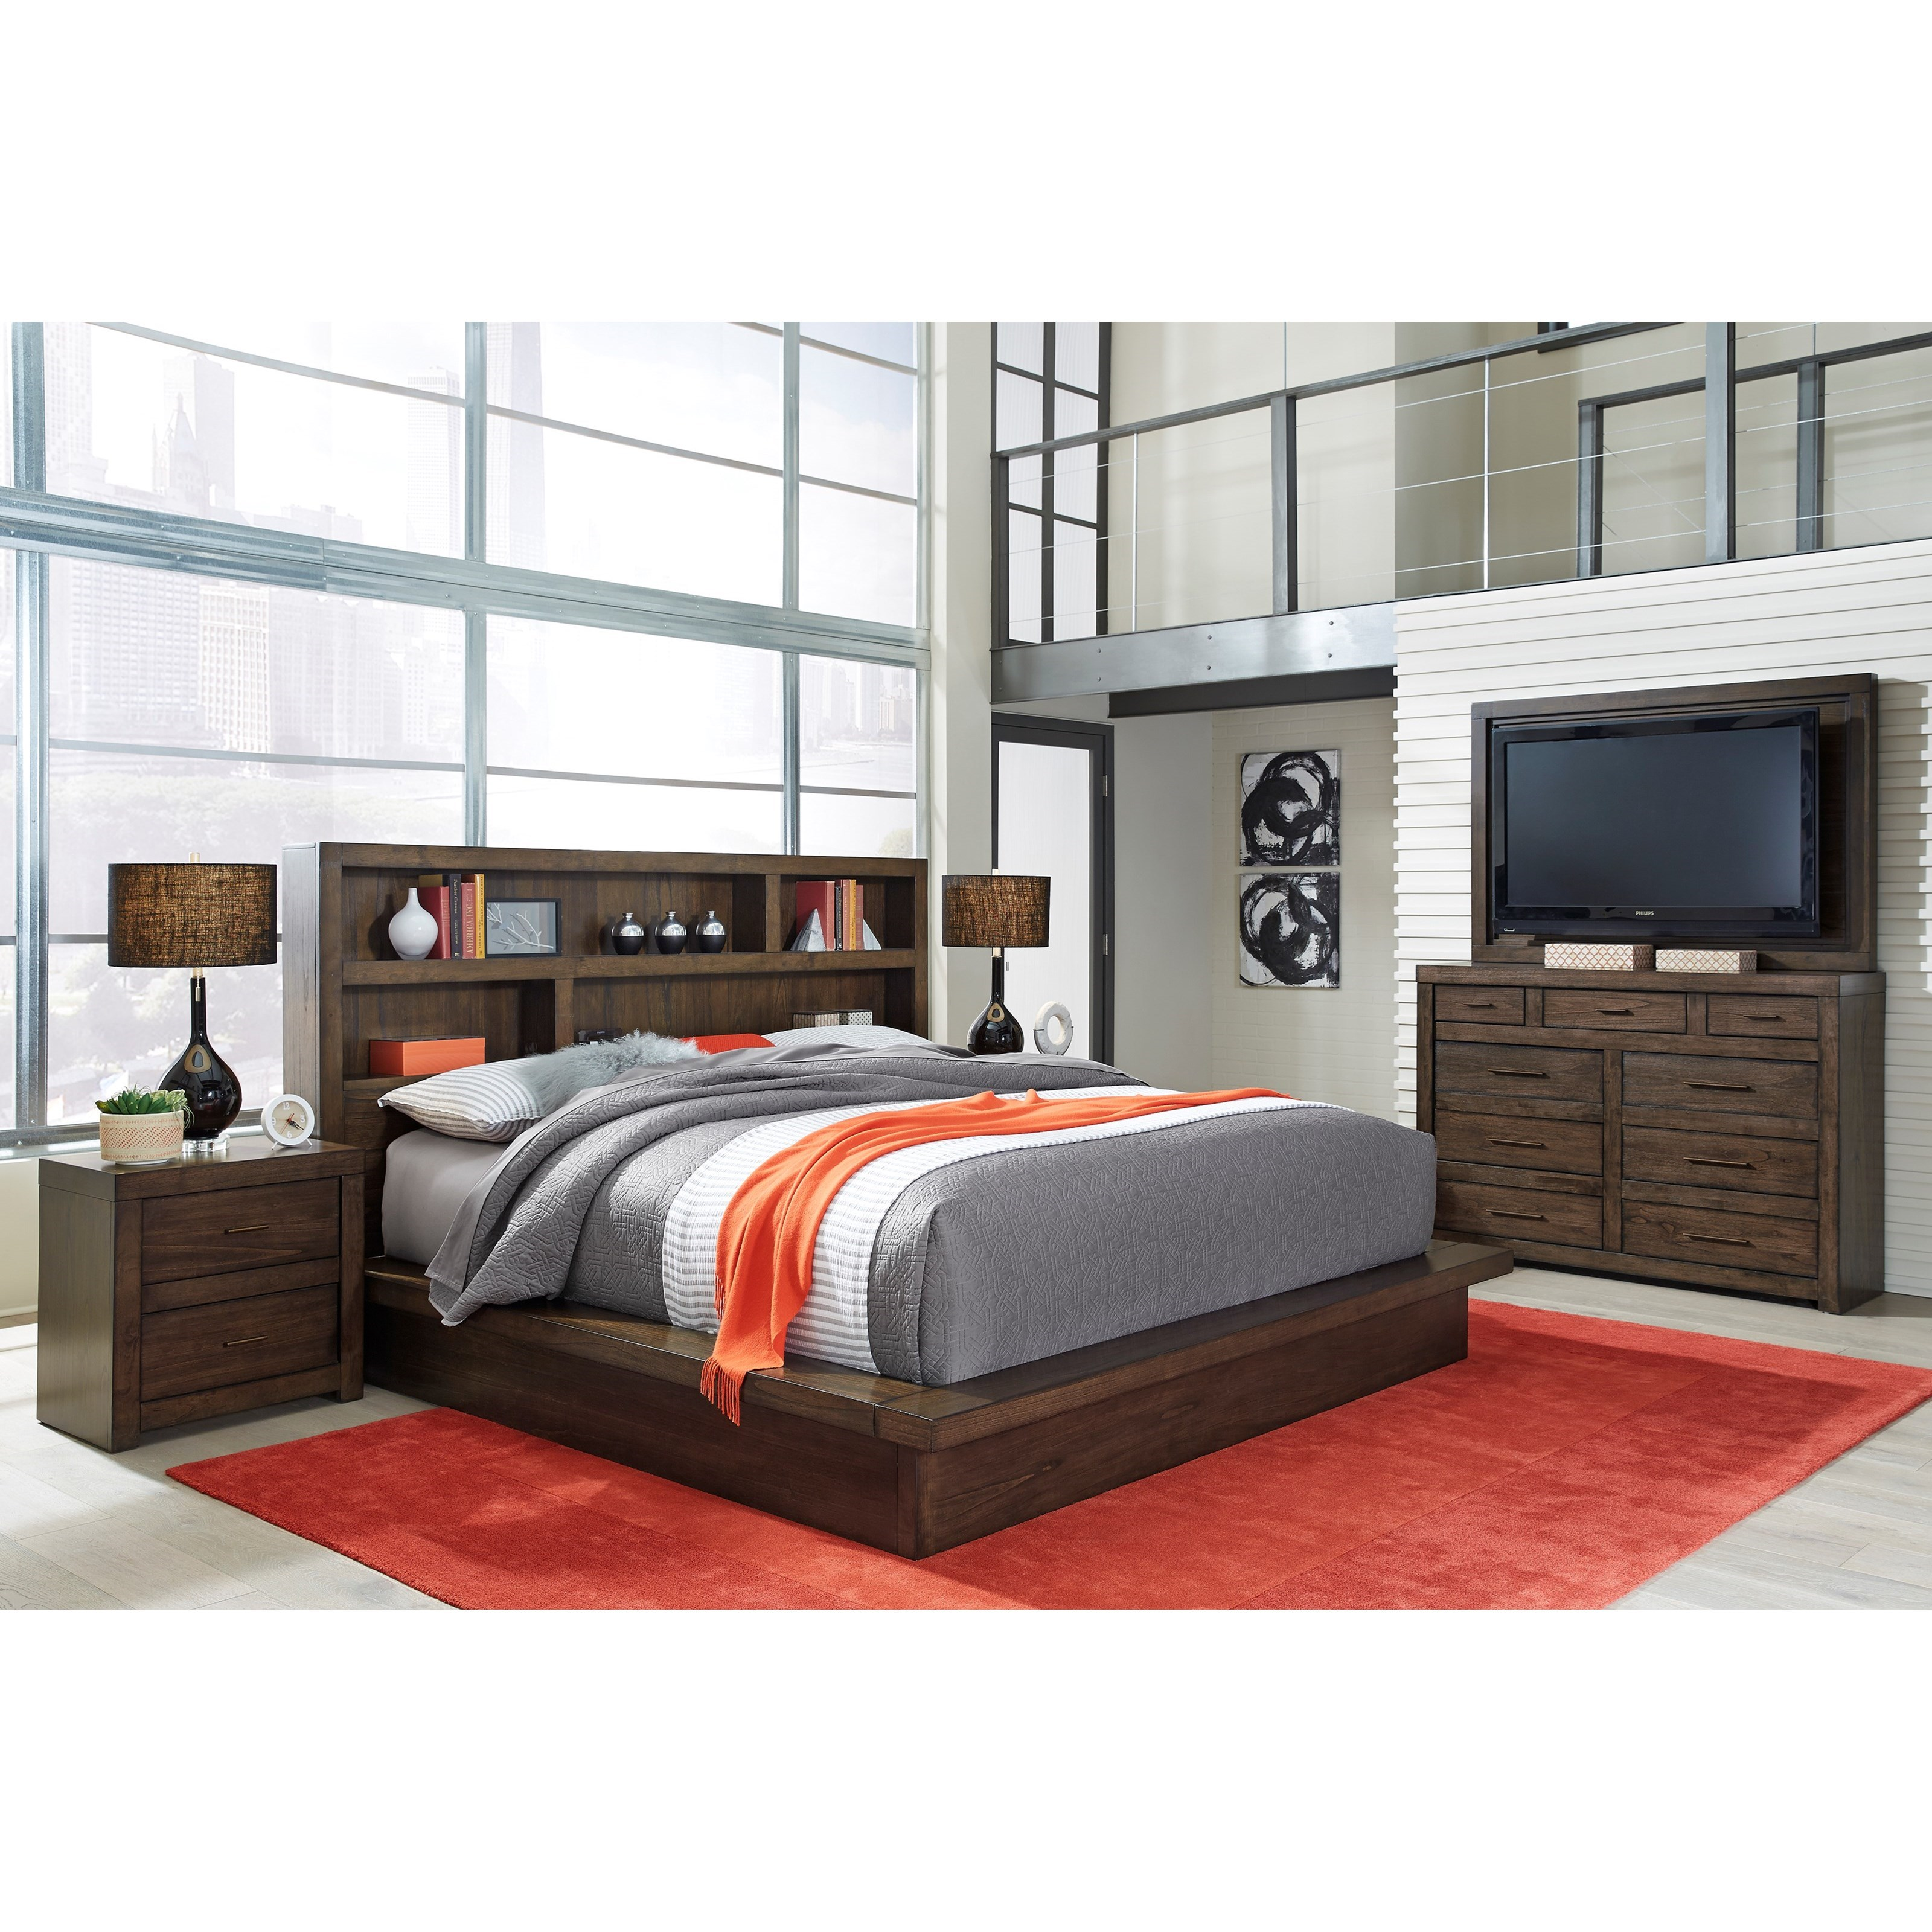 Modern Loft Queen Bedroom Group by Aspenhome at Walker's Furniture